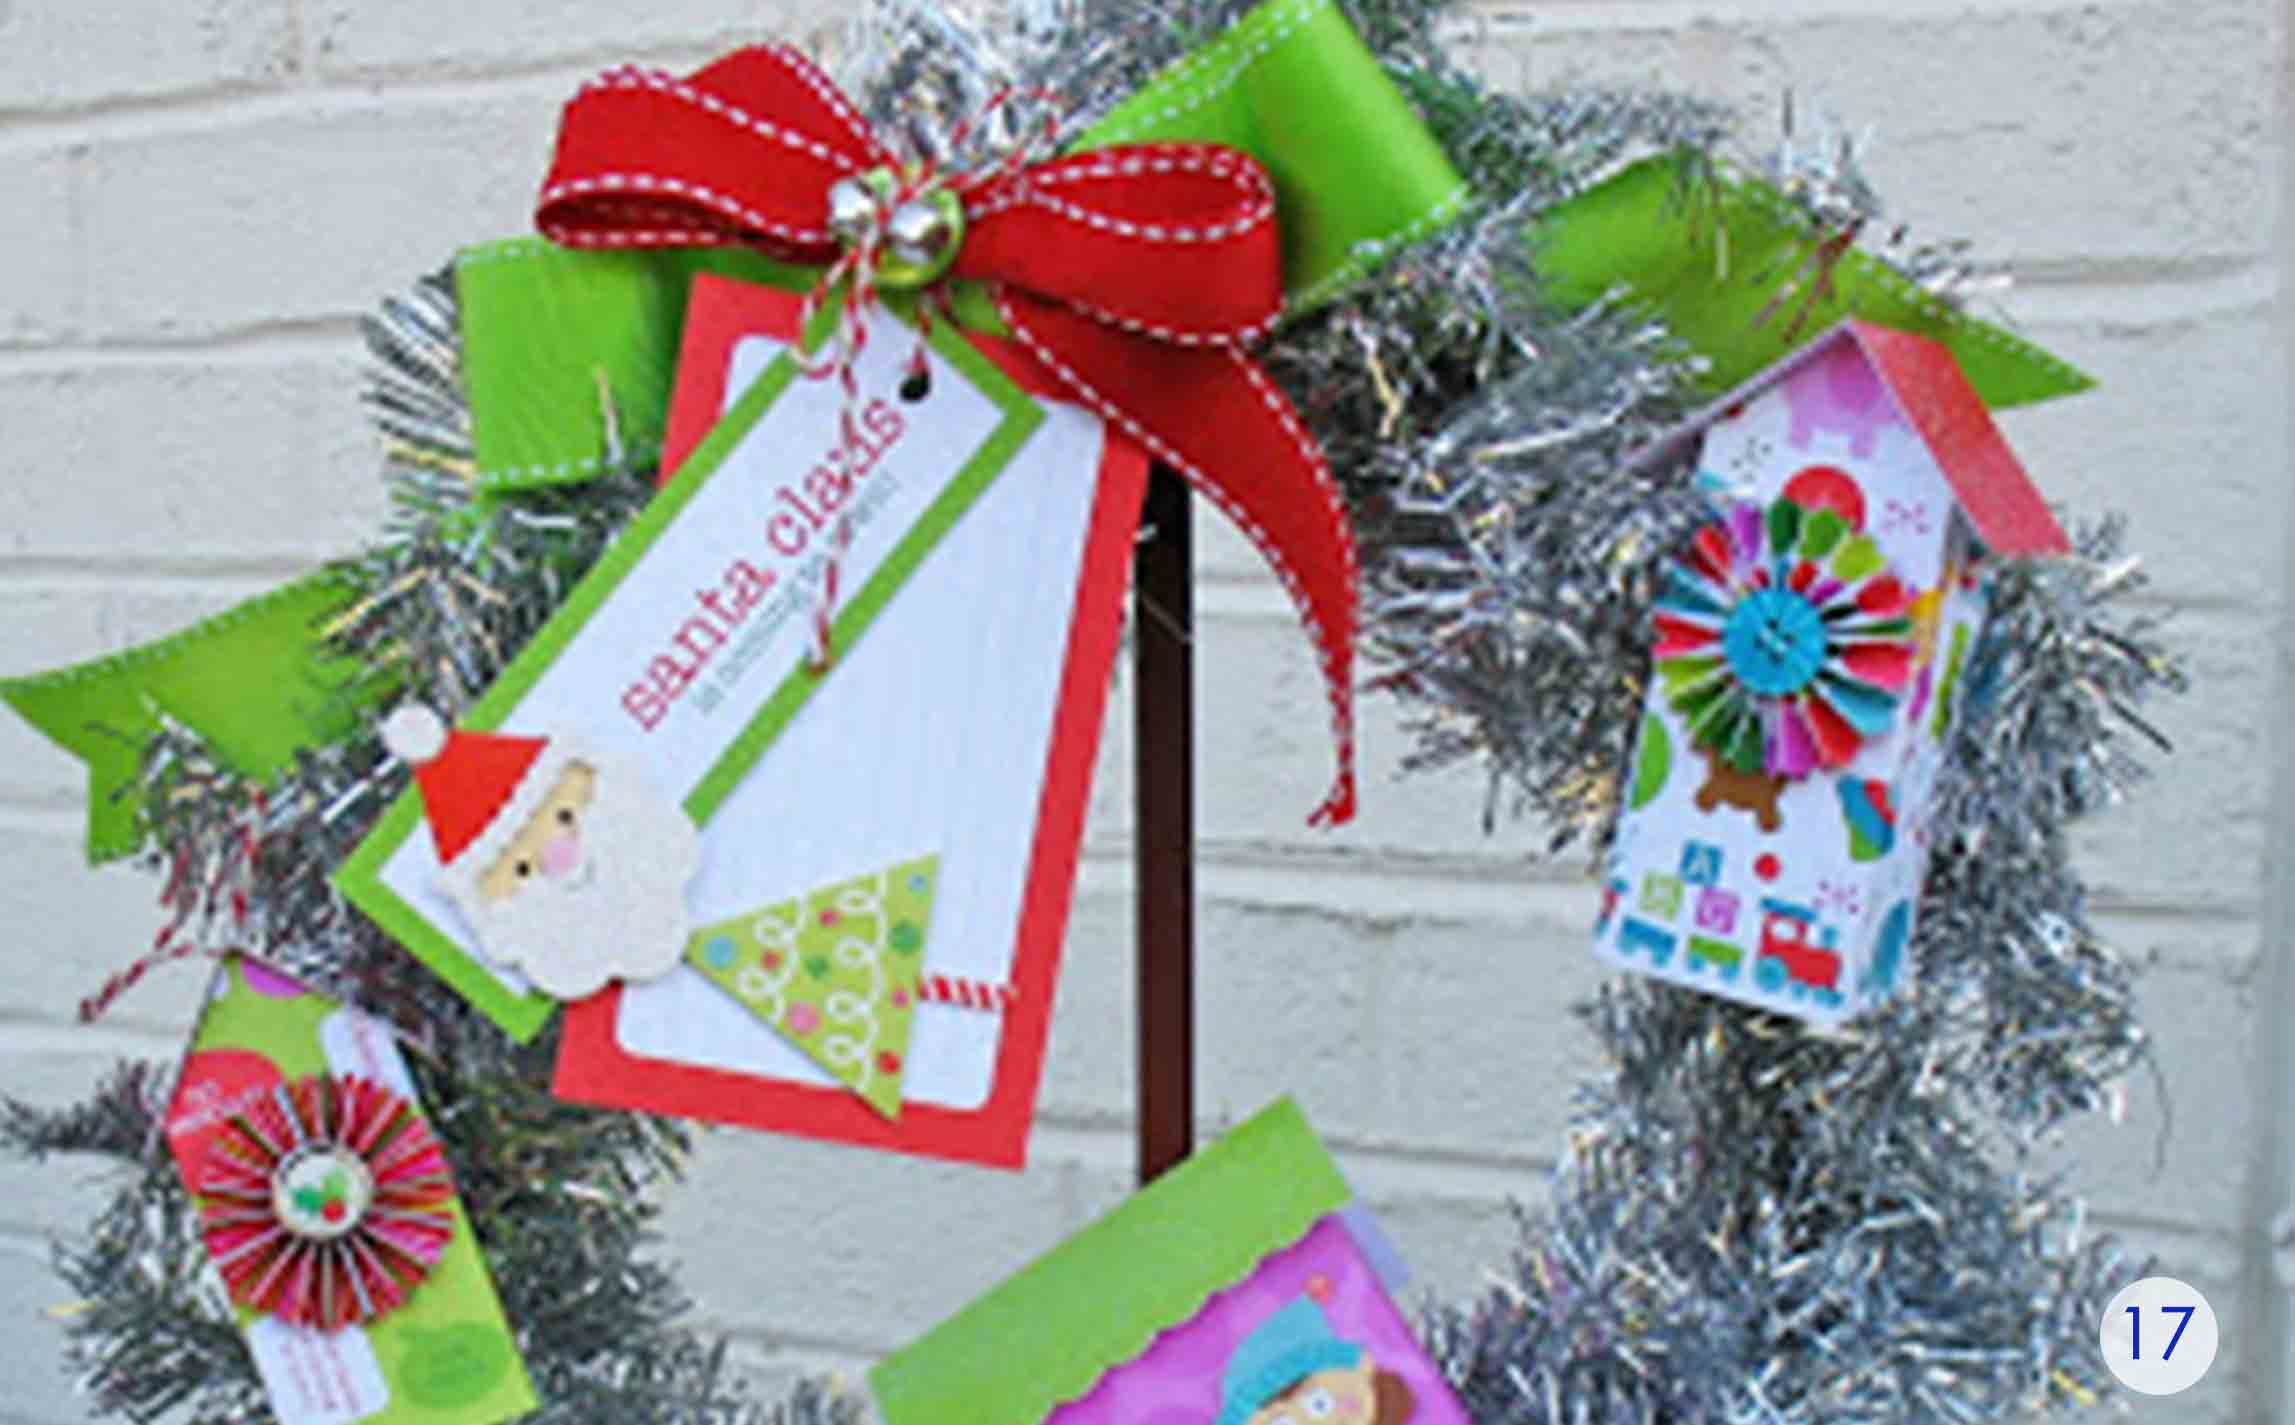 Wedding Gift Card Presentation : The Best Gift Card Tree and Gift Card Wreaths Ever! GCG